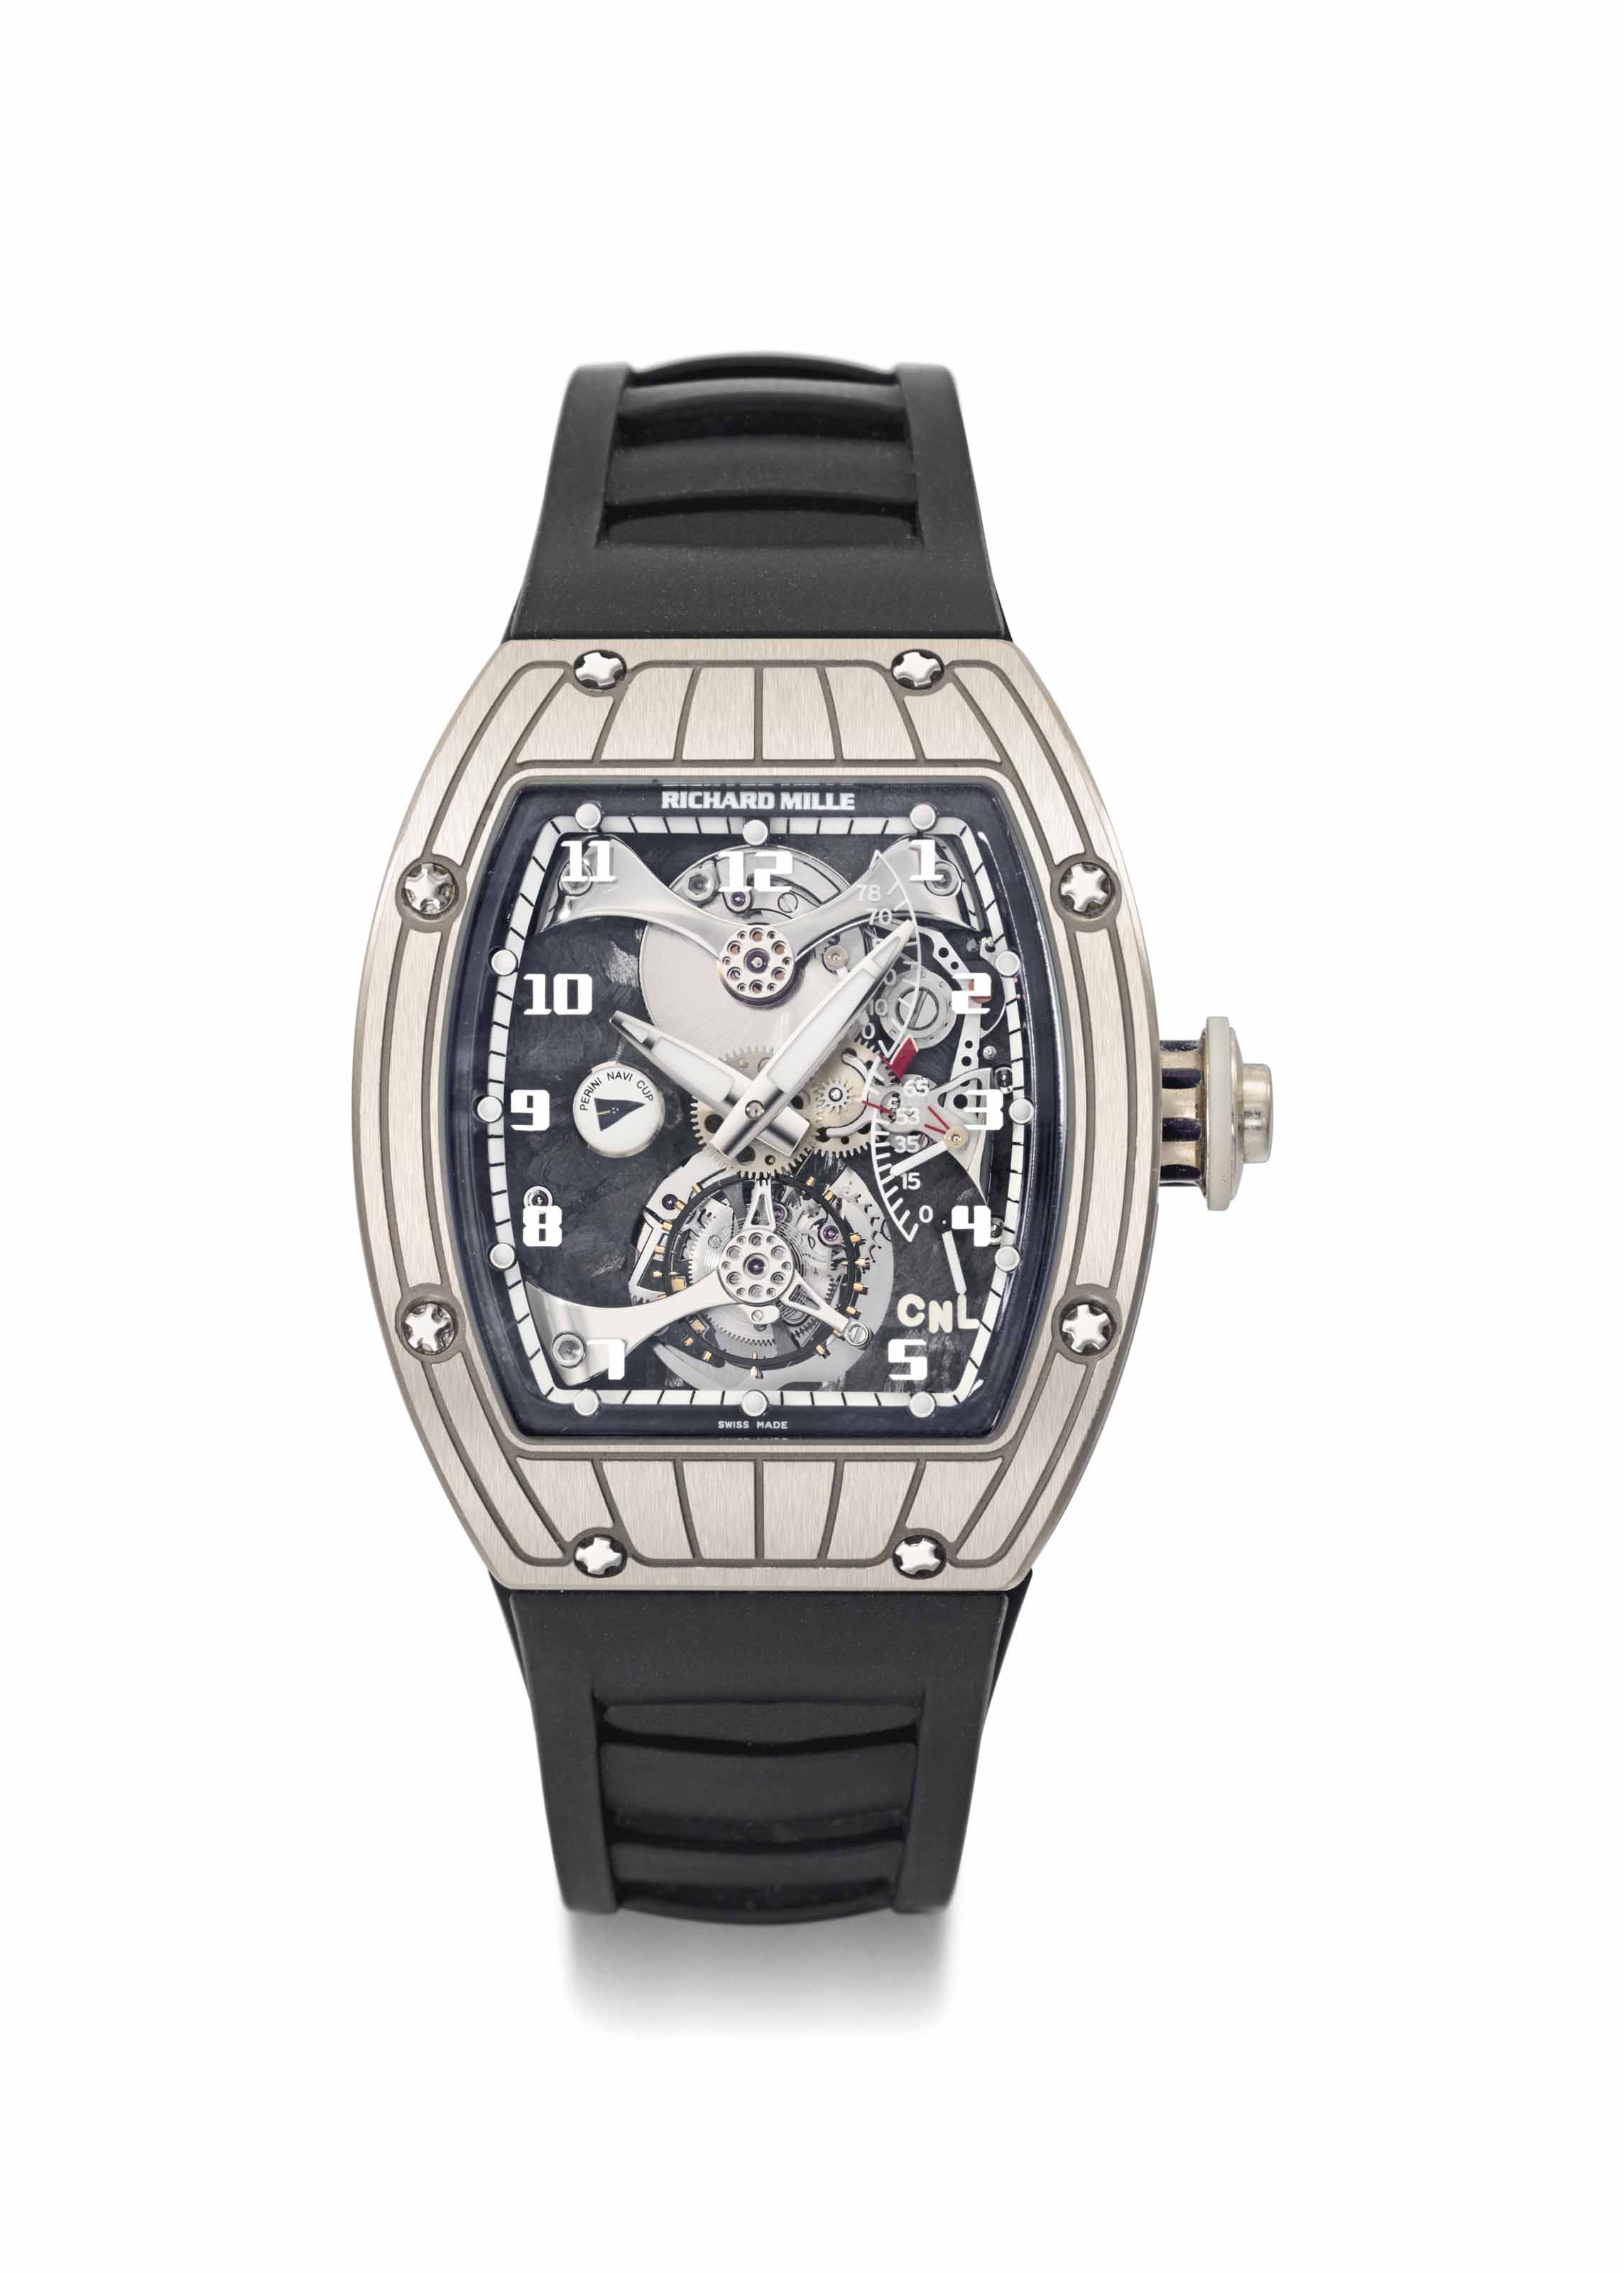 Richard Mille. A fine and very rare 18K white gold skeletonized tourbillon wristwatch with power reserve, function selection, torque indicator with box and warranty